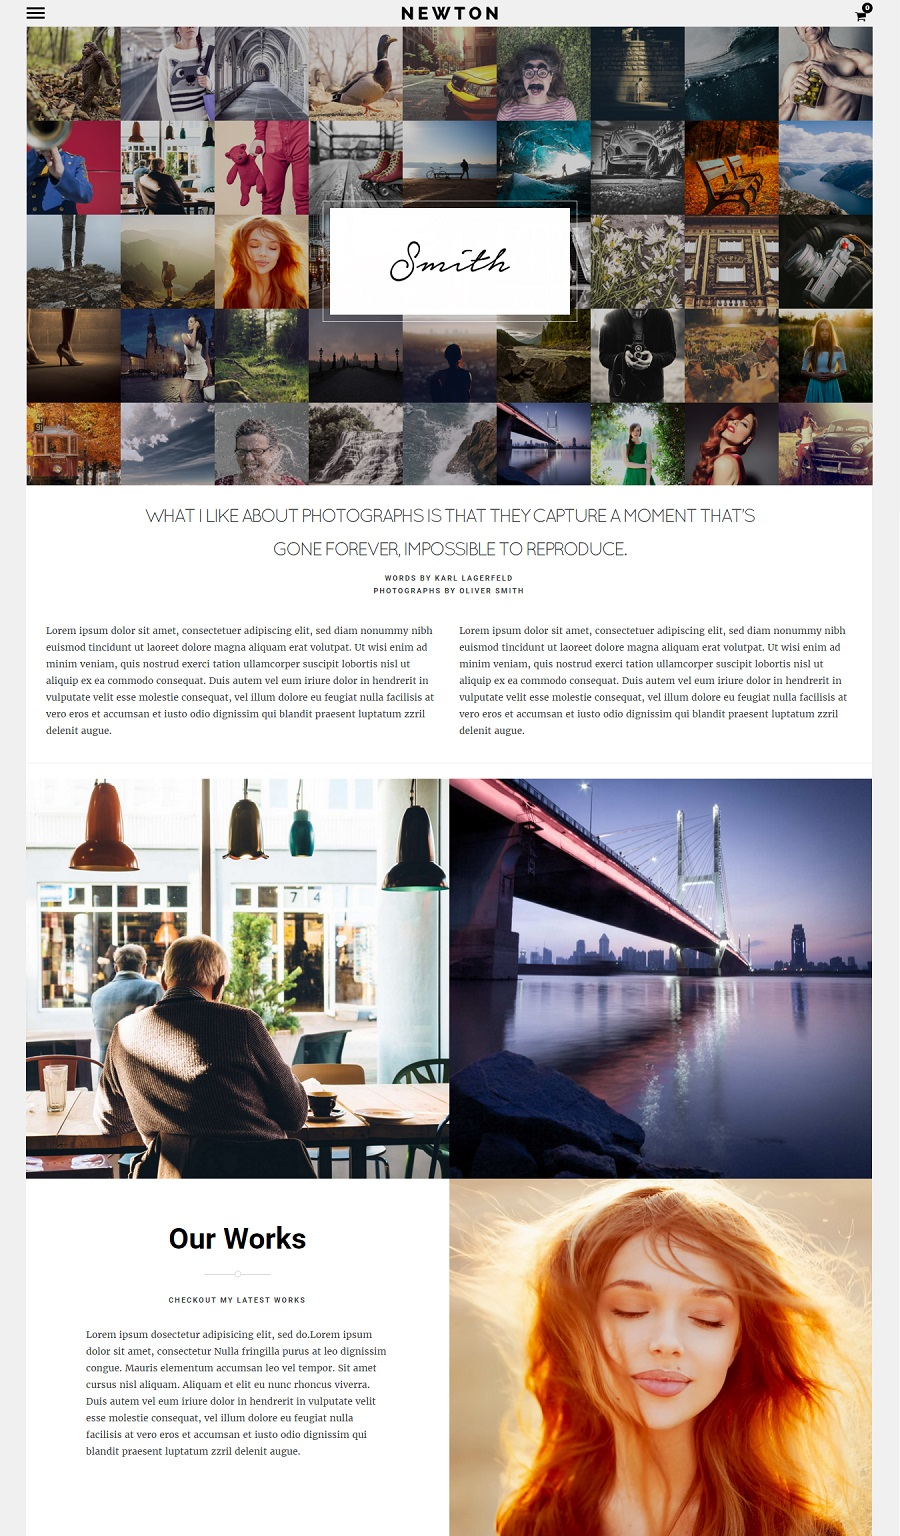 Newton photography wordpress theme